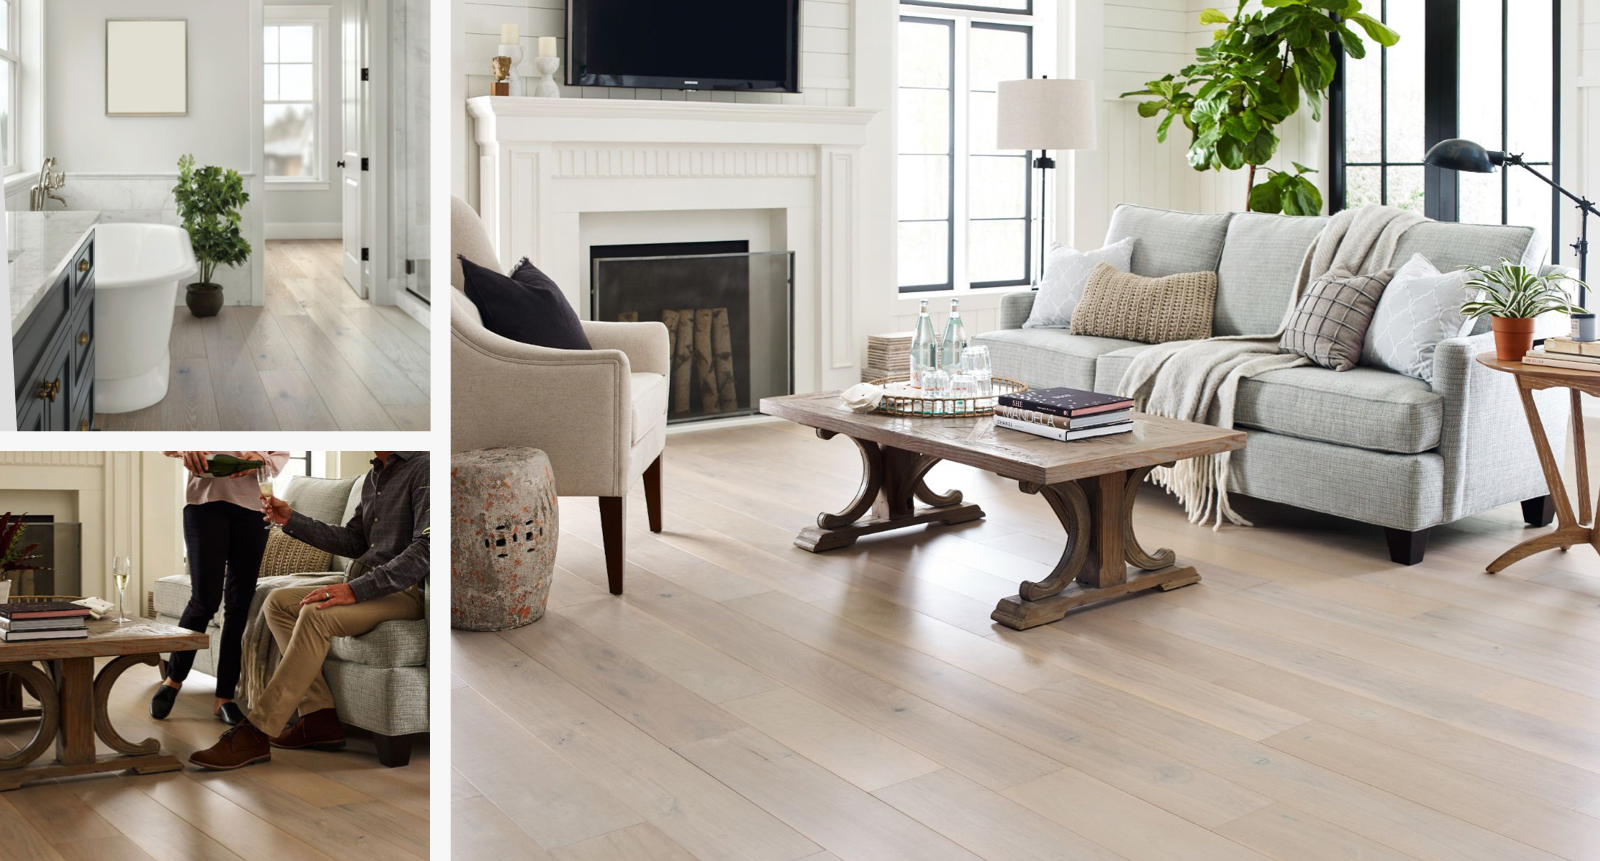 Floorte waterproof hardwood flooring for your home | Carpet Advantage Company Inc